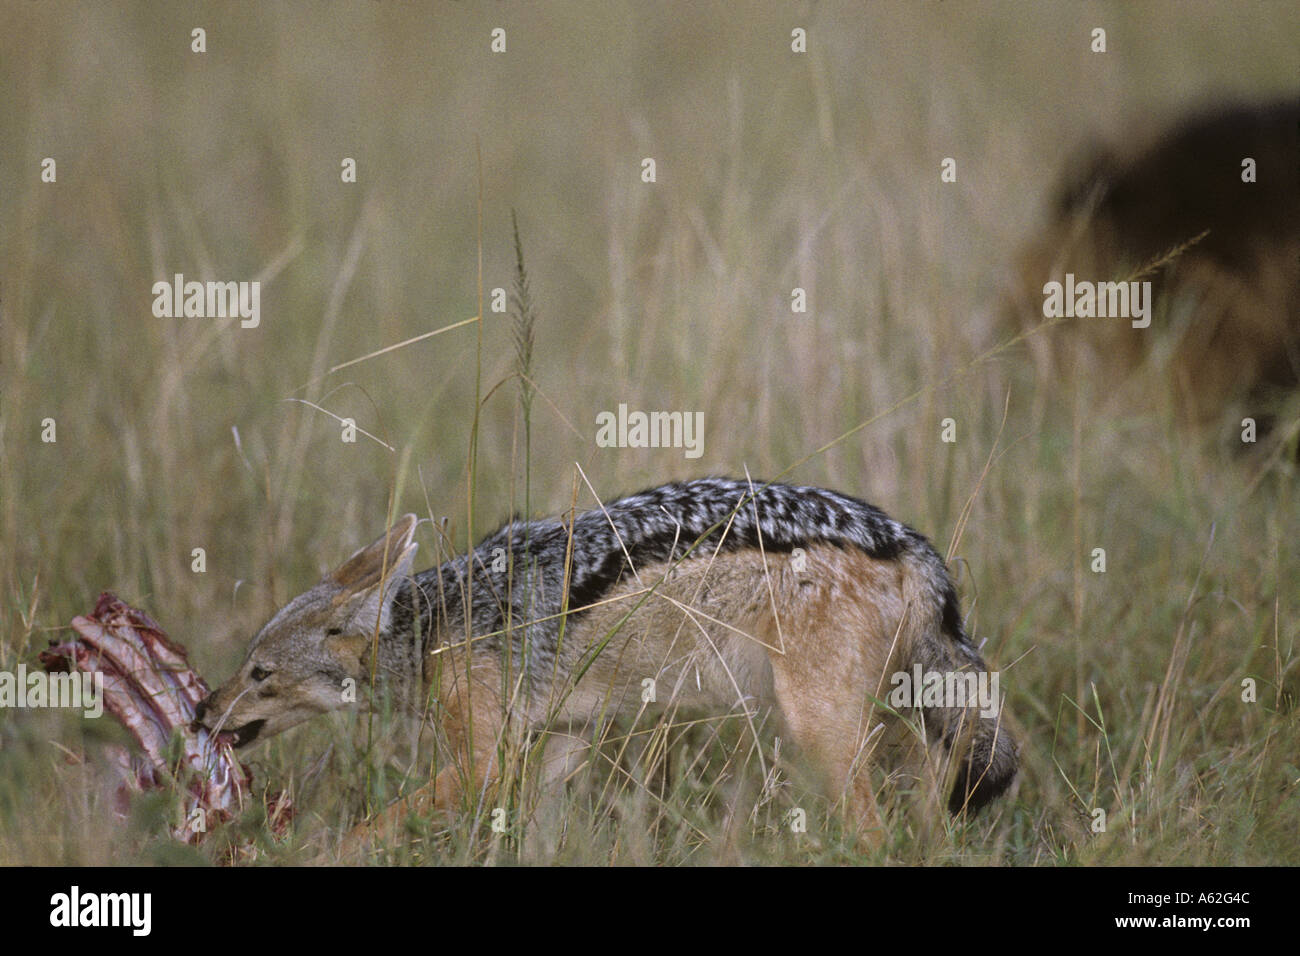 Africa Kenya Masai Mara Game Reserve Black Backed Jackal Canis mesomelas feeding on scraps from Lion kill on savanna Stock Photo